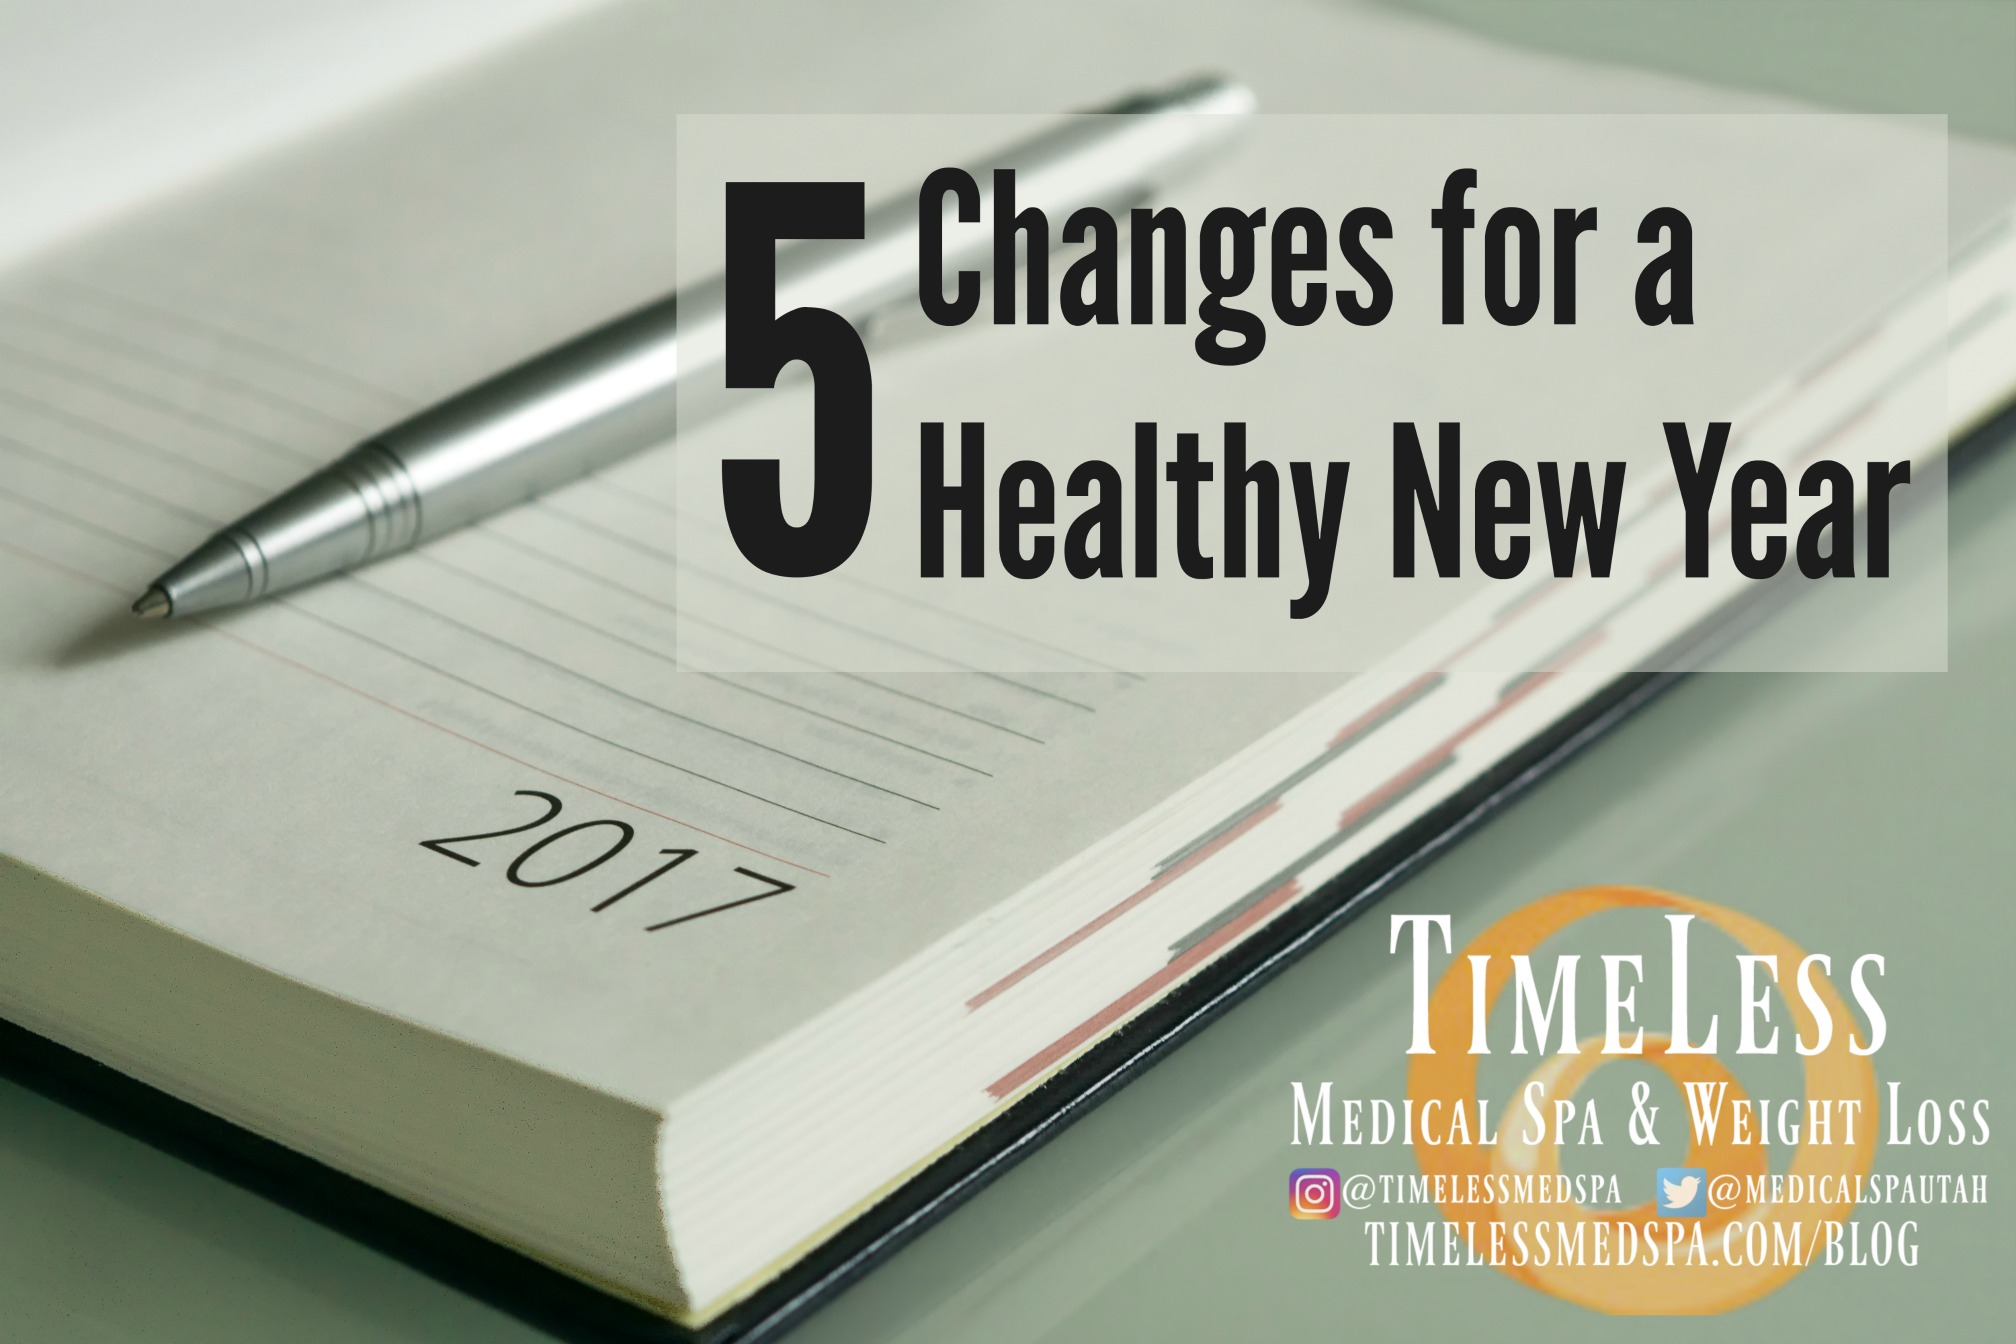 5 Changes for a Healthy New Year